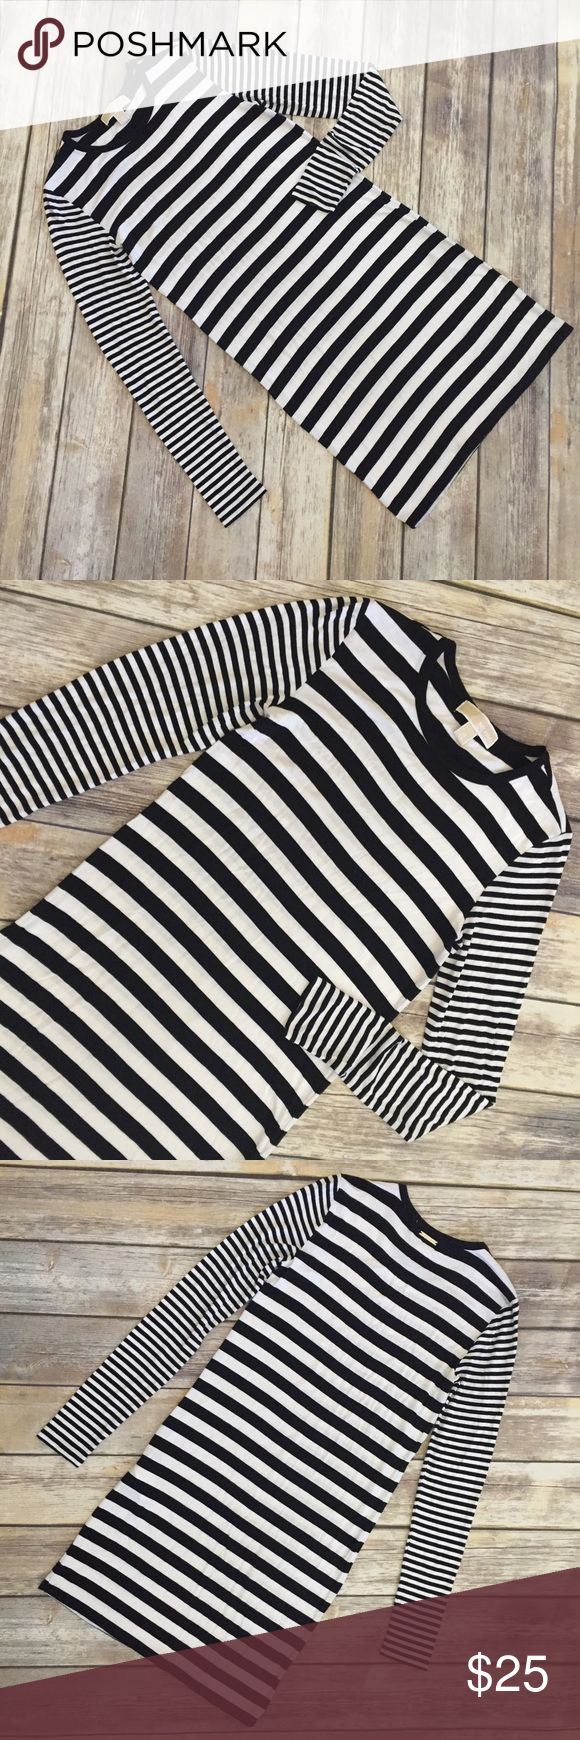 """Michael Kors B/W Striped T-Shirt Dress Michael Kors black and white striped dress, has a t-shirt feel and is made of 95% rayon and 5% spandex. Size XS. Has a silver-toned Michael Kors logo bar at back of neckline. Total unstretched length is approximately 33.5"""". In excellent condition with no flaws. ⚓ No trades or holds. I accept reasonable offers. I only negotiate through the offer button. 🚭🐩HB MICHAEL Michael Kors Dresses Midi"""